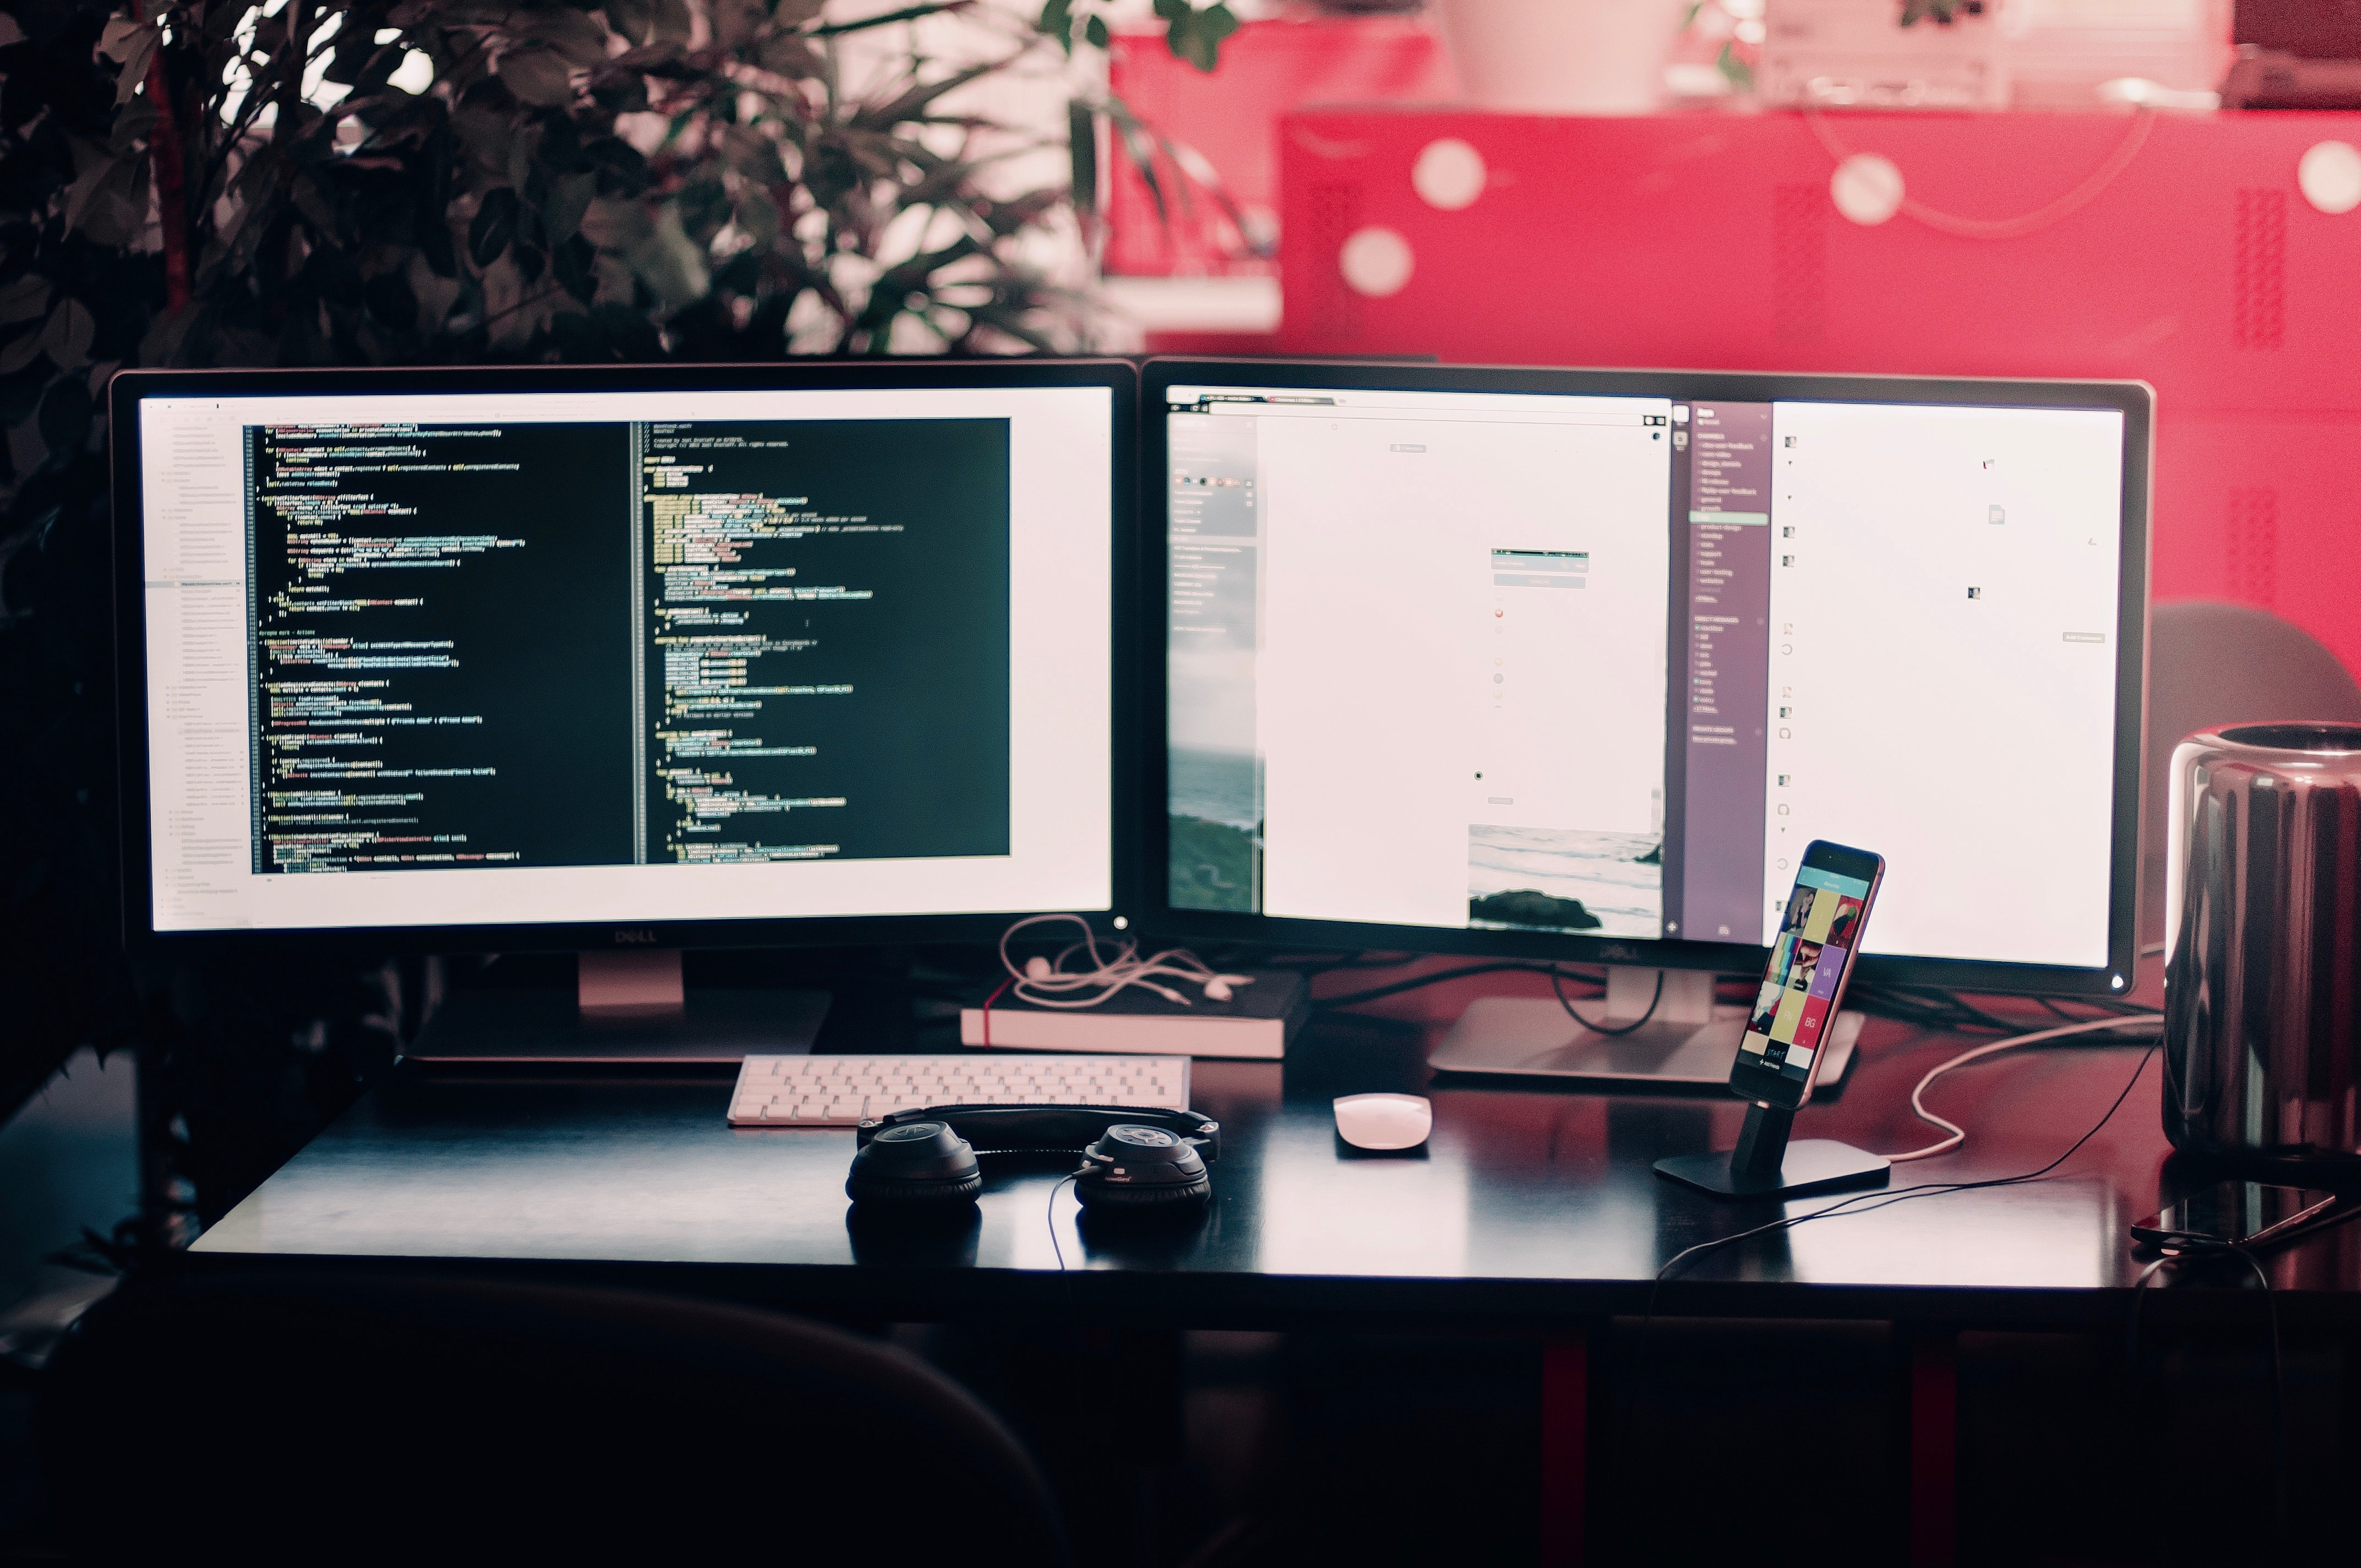 Photos of office Real Two Black Computer Monitors On Black Table The Verge 100 Office Pictures hd Download Free Images On Unsplash